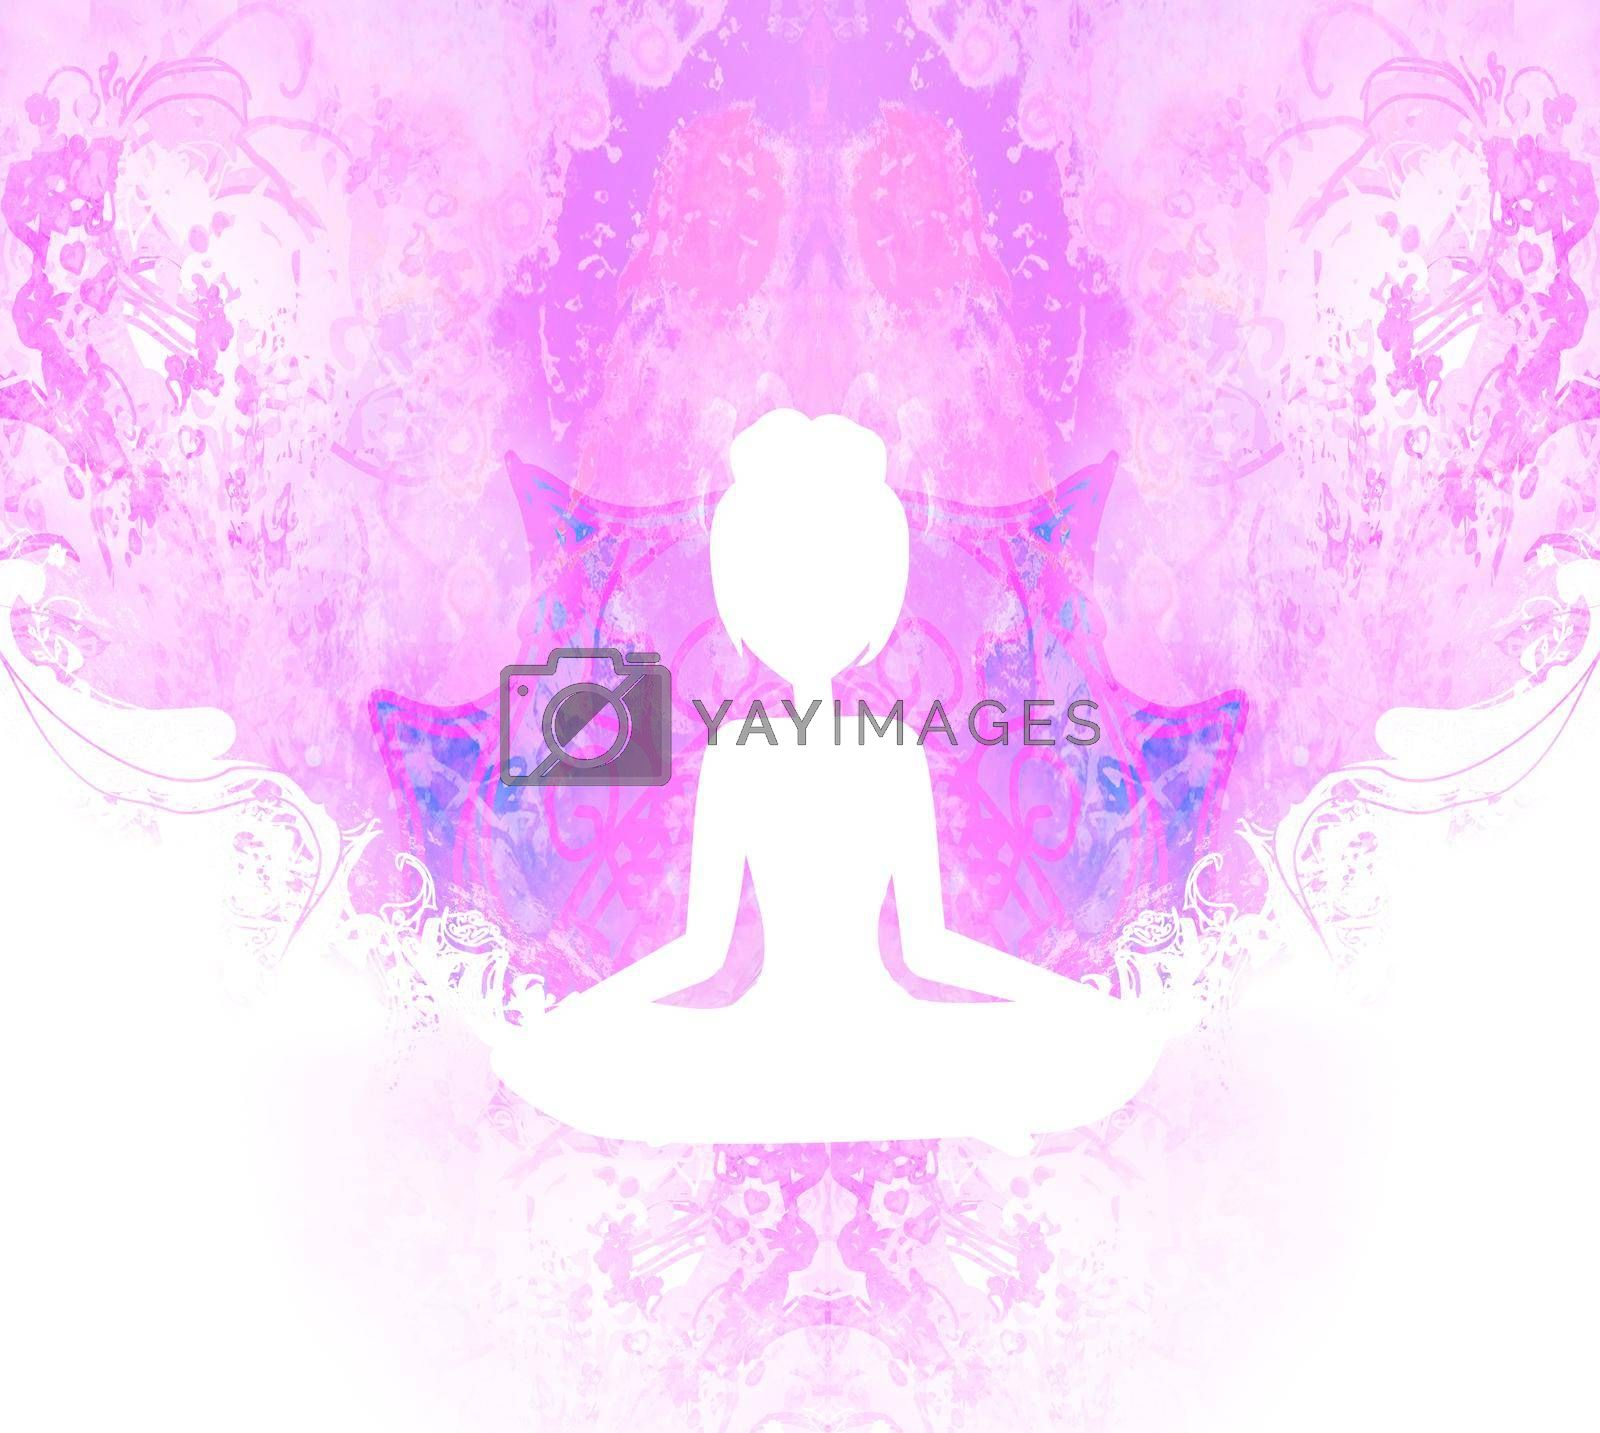 Royalty free image of Yoga and Spirituality, abstract ornamental card by JackyBrown